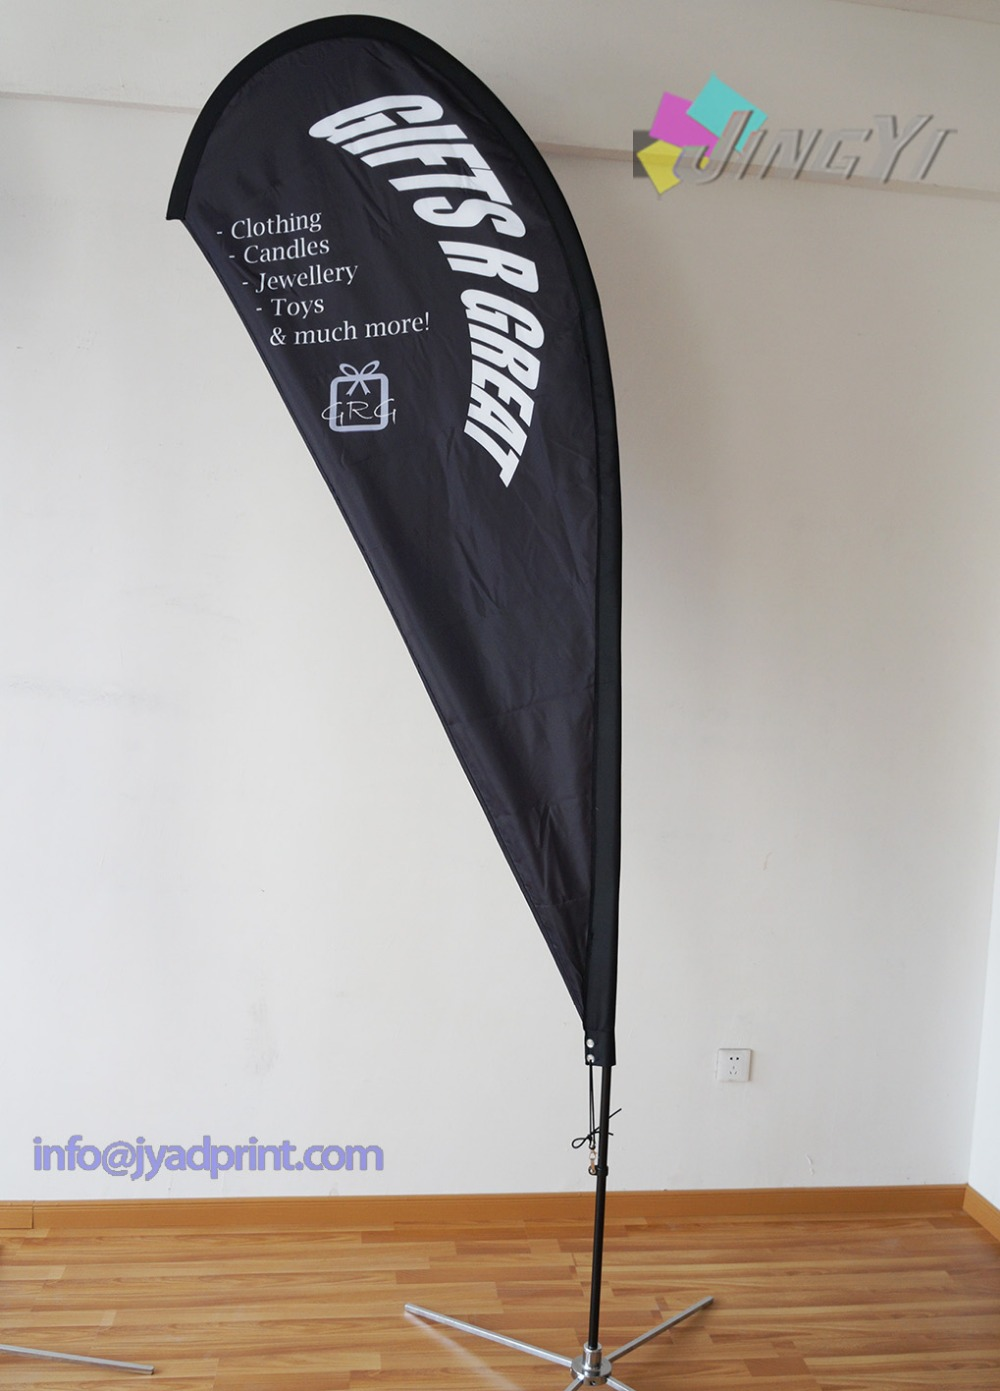 Banner banners banner poles outdoor display cheap custom - 2pcs 3m Tall Custom Printing Teardrop Flags And 1p